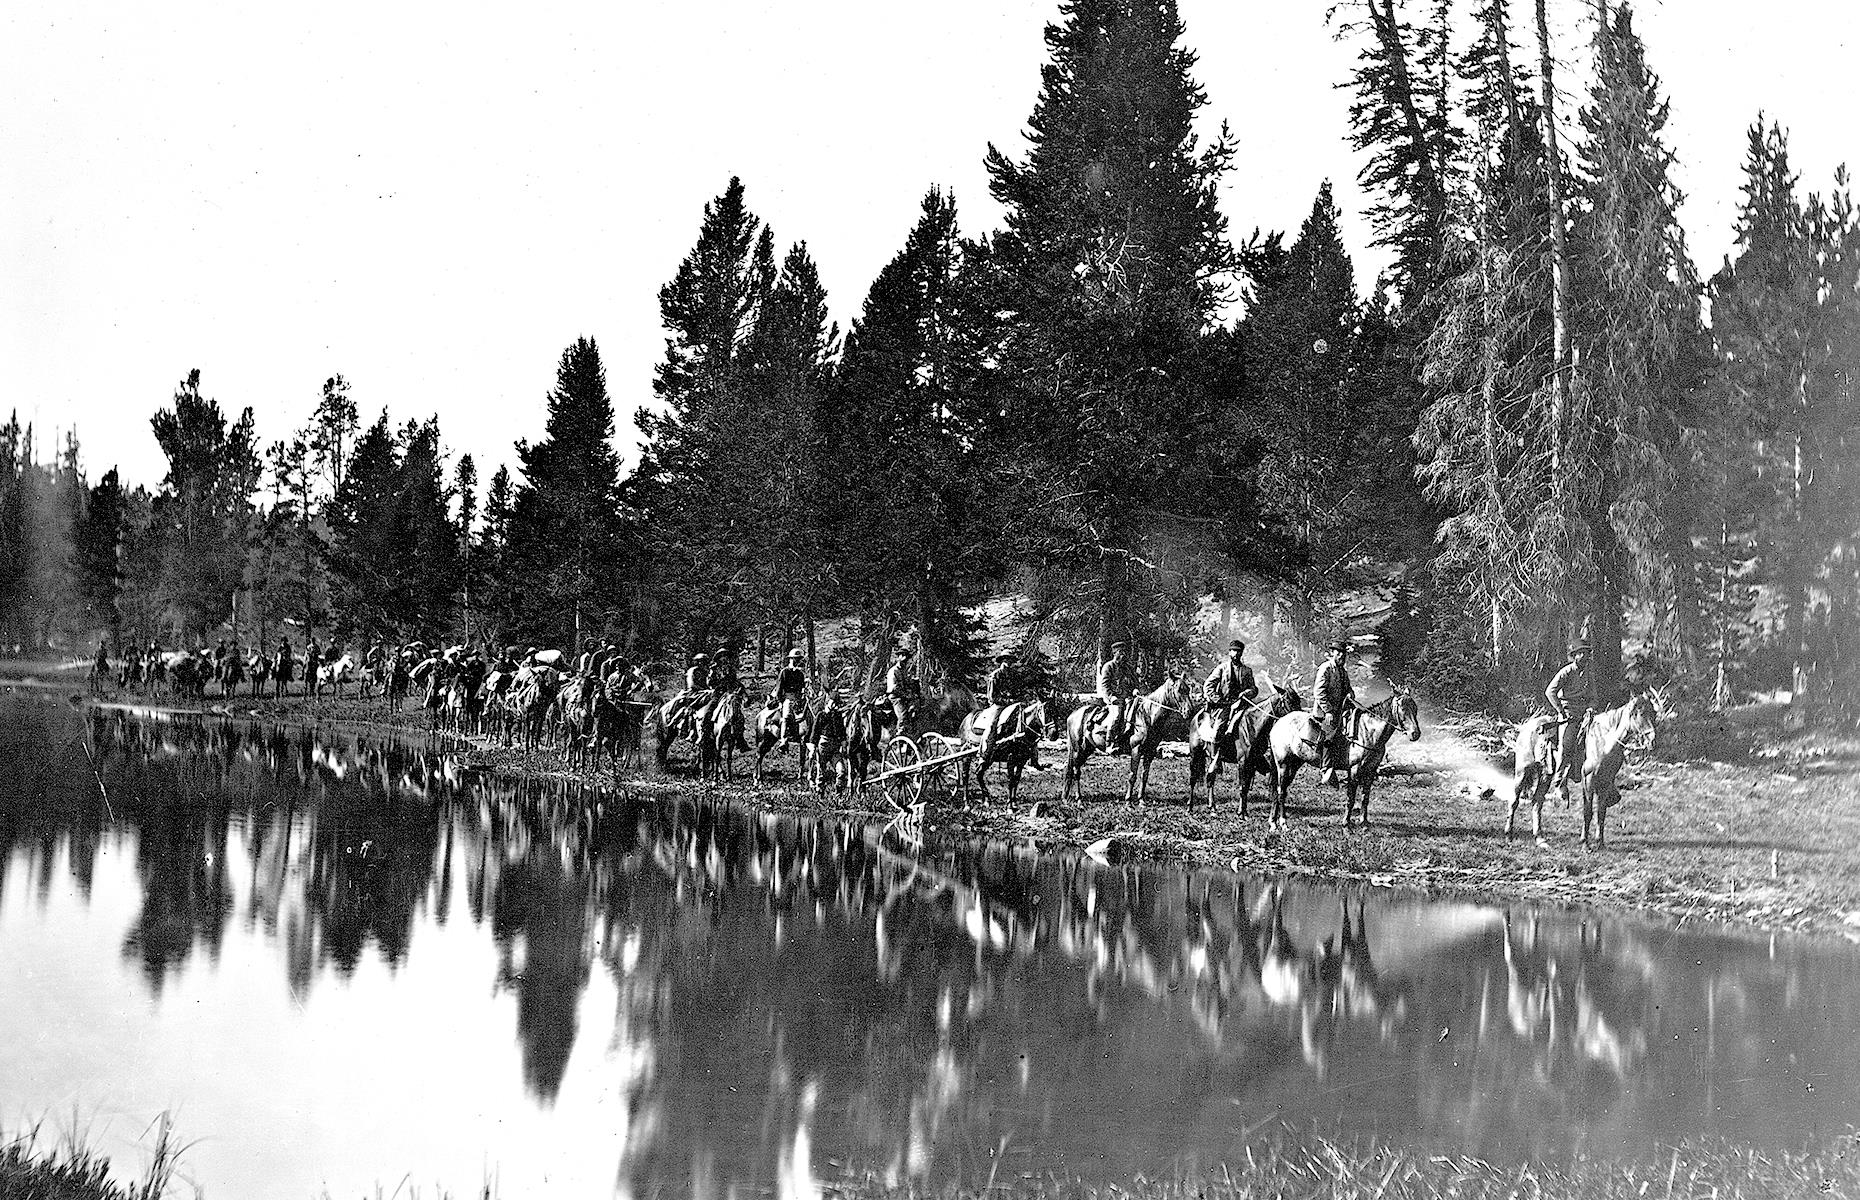 Slide 5 of 47: Yellowstone is the oldest site in the USA's National Park System. Established in 1872 it takes over a great swathe of northwestern Wyoming and seeps into the states of Montana and Idaho too. This photo actually predates the park's official founding – it shows a large party of men and their pack train during the Hayden Geological Survey of 1871, which explored the land that would eventually become Yellowstone National Park.